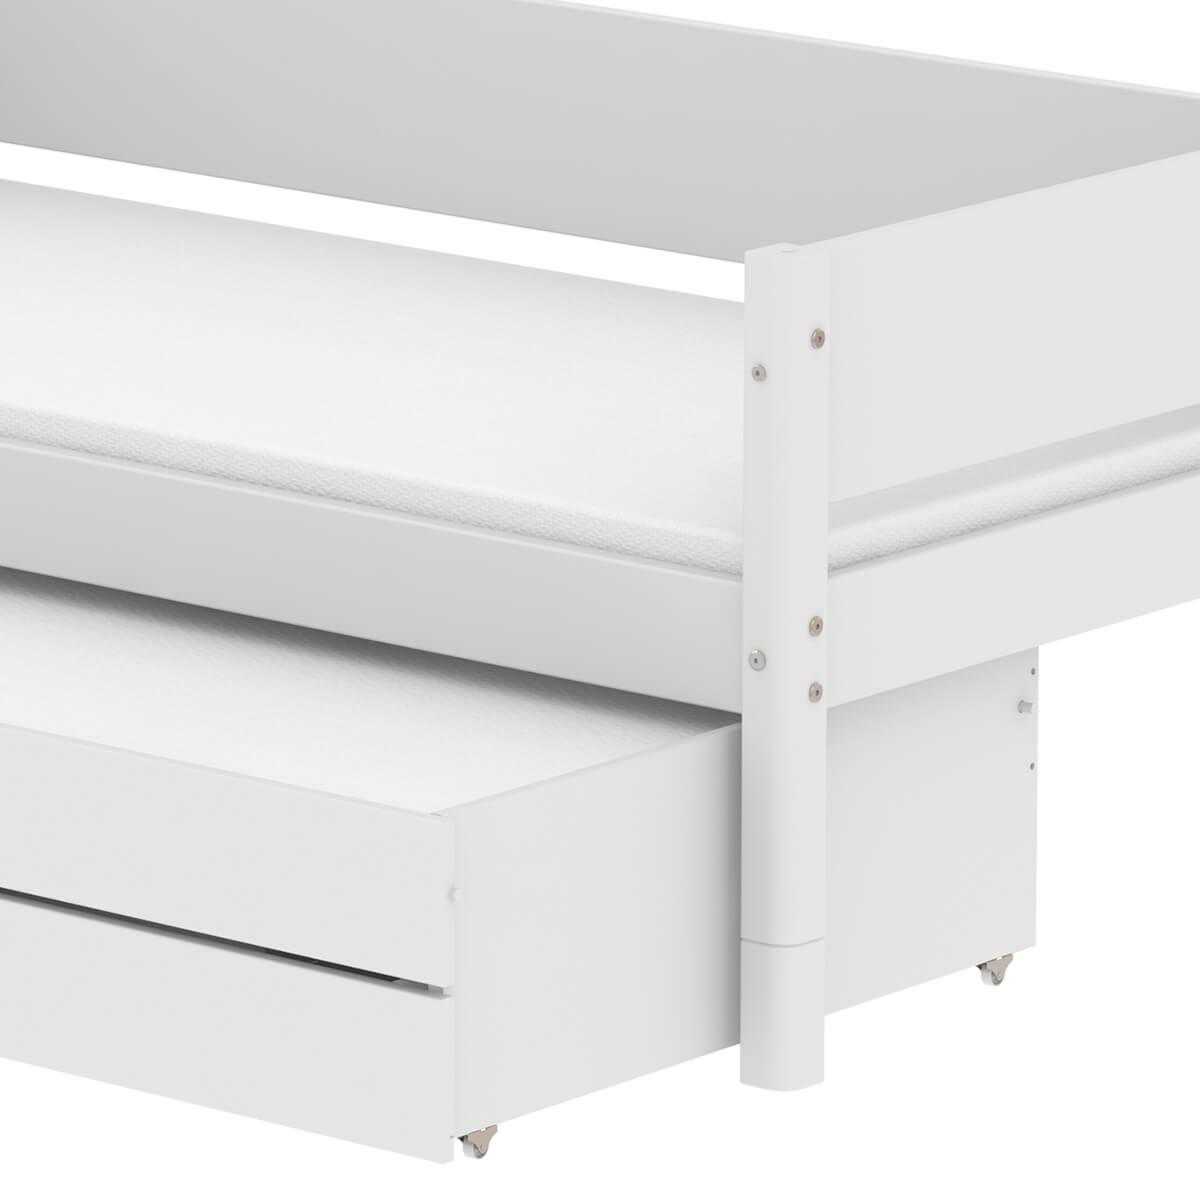 Lit enfant simple 90x190cm lit gigogne-2 tiroirs WHITE Flexa blanc